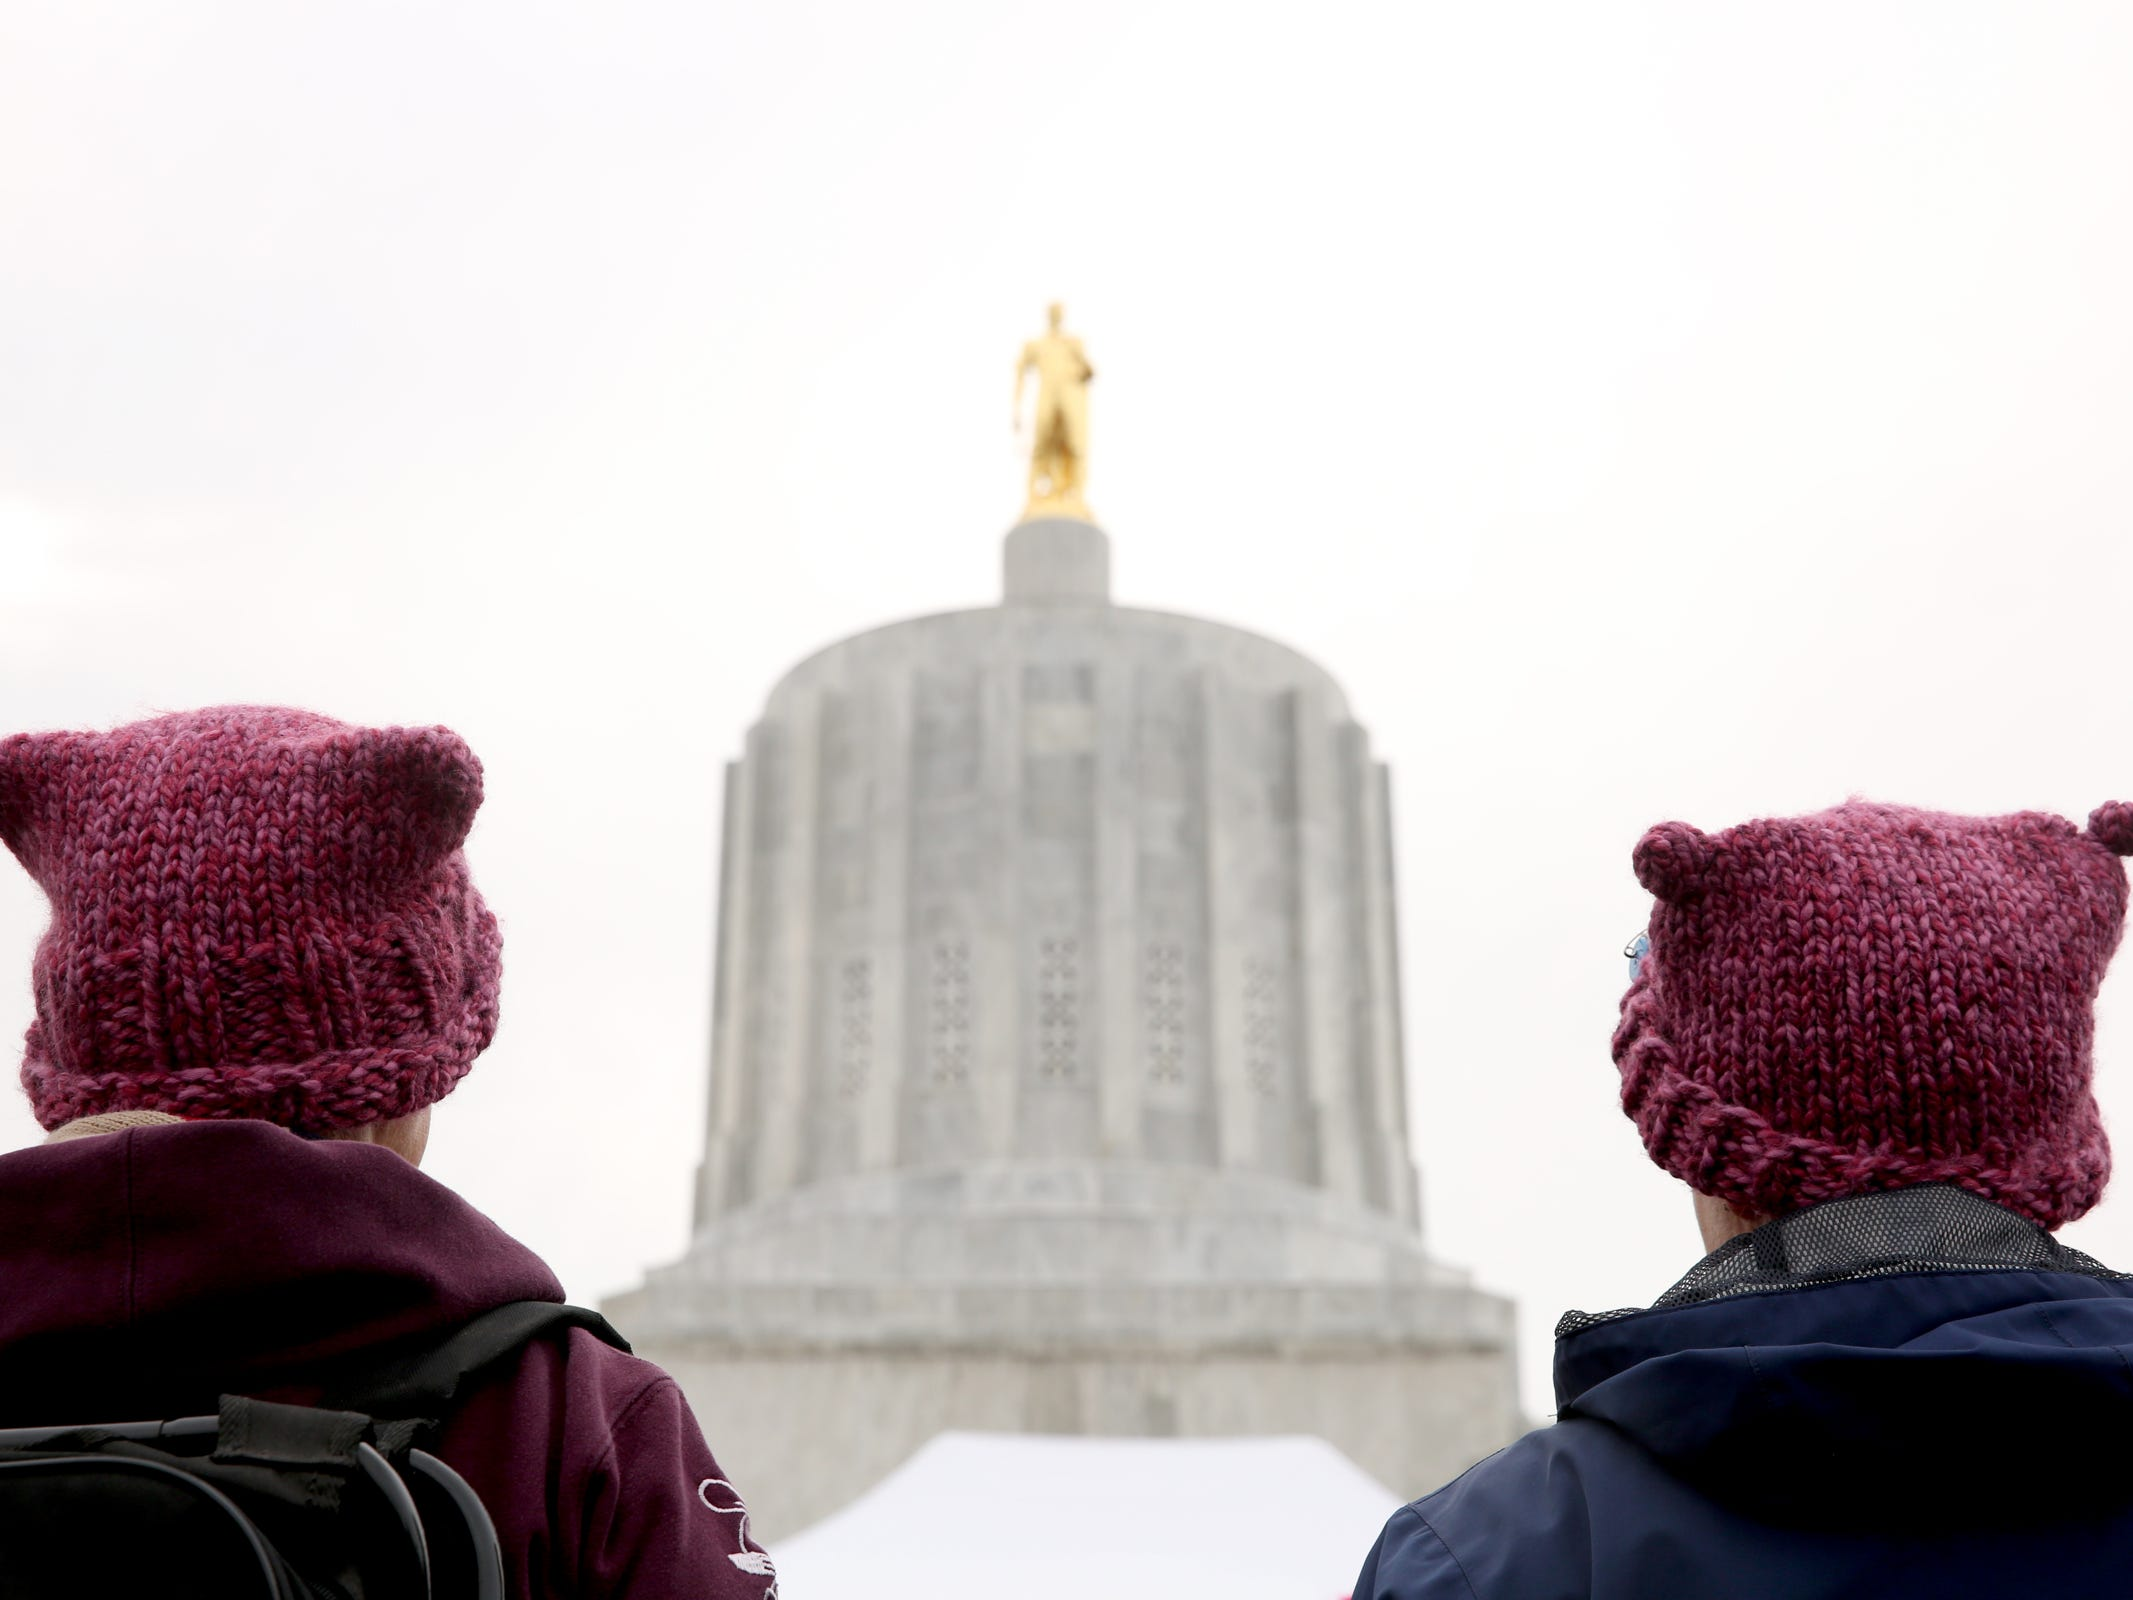 Kate O'Neil, left, and Jill Coleman, both of Dallas, wear pussy hats at Women's March Salem outside the Oregon State Capitol on Saturday, Jan. 19, 2019.